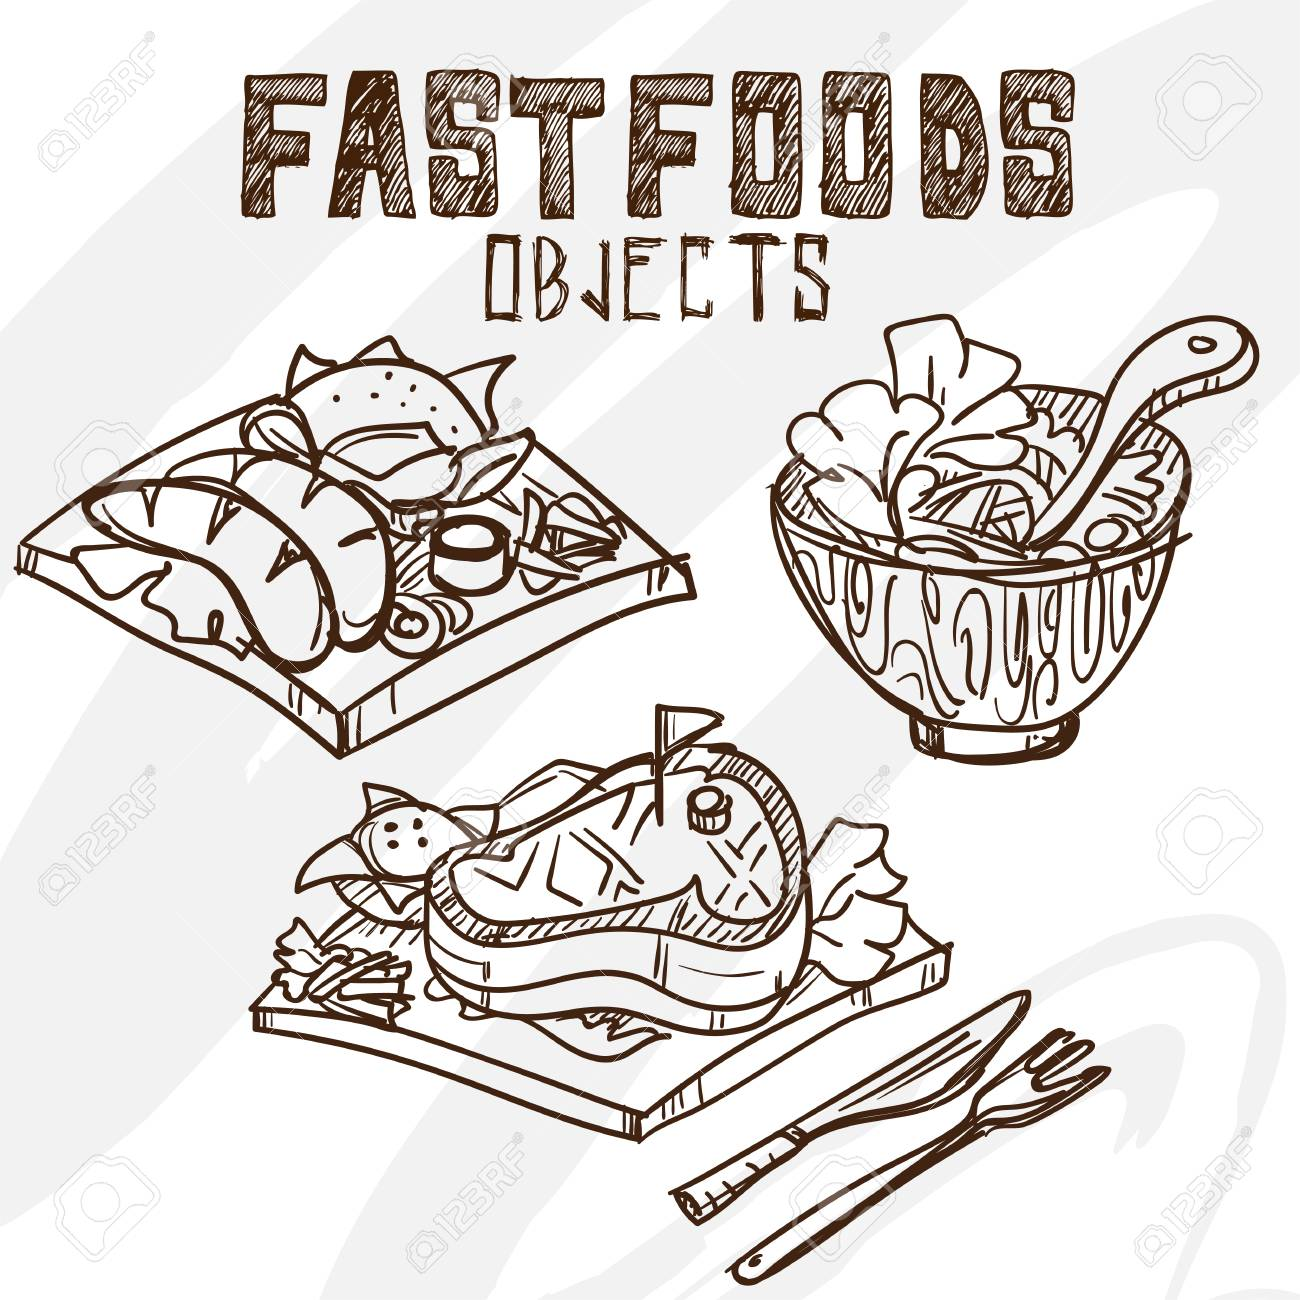 1300x1300 Sausage Salad Steak Drawing Graphic Royalty Free Cliparts, Vectors